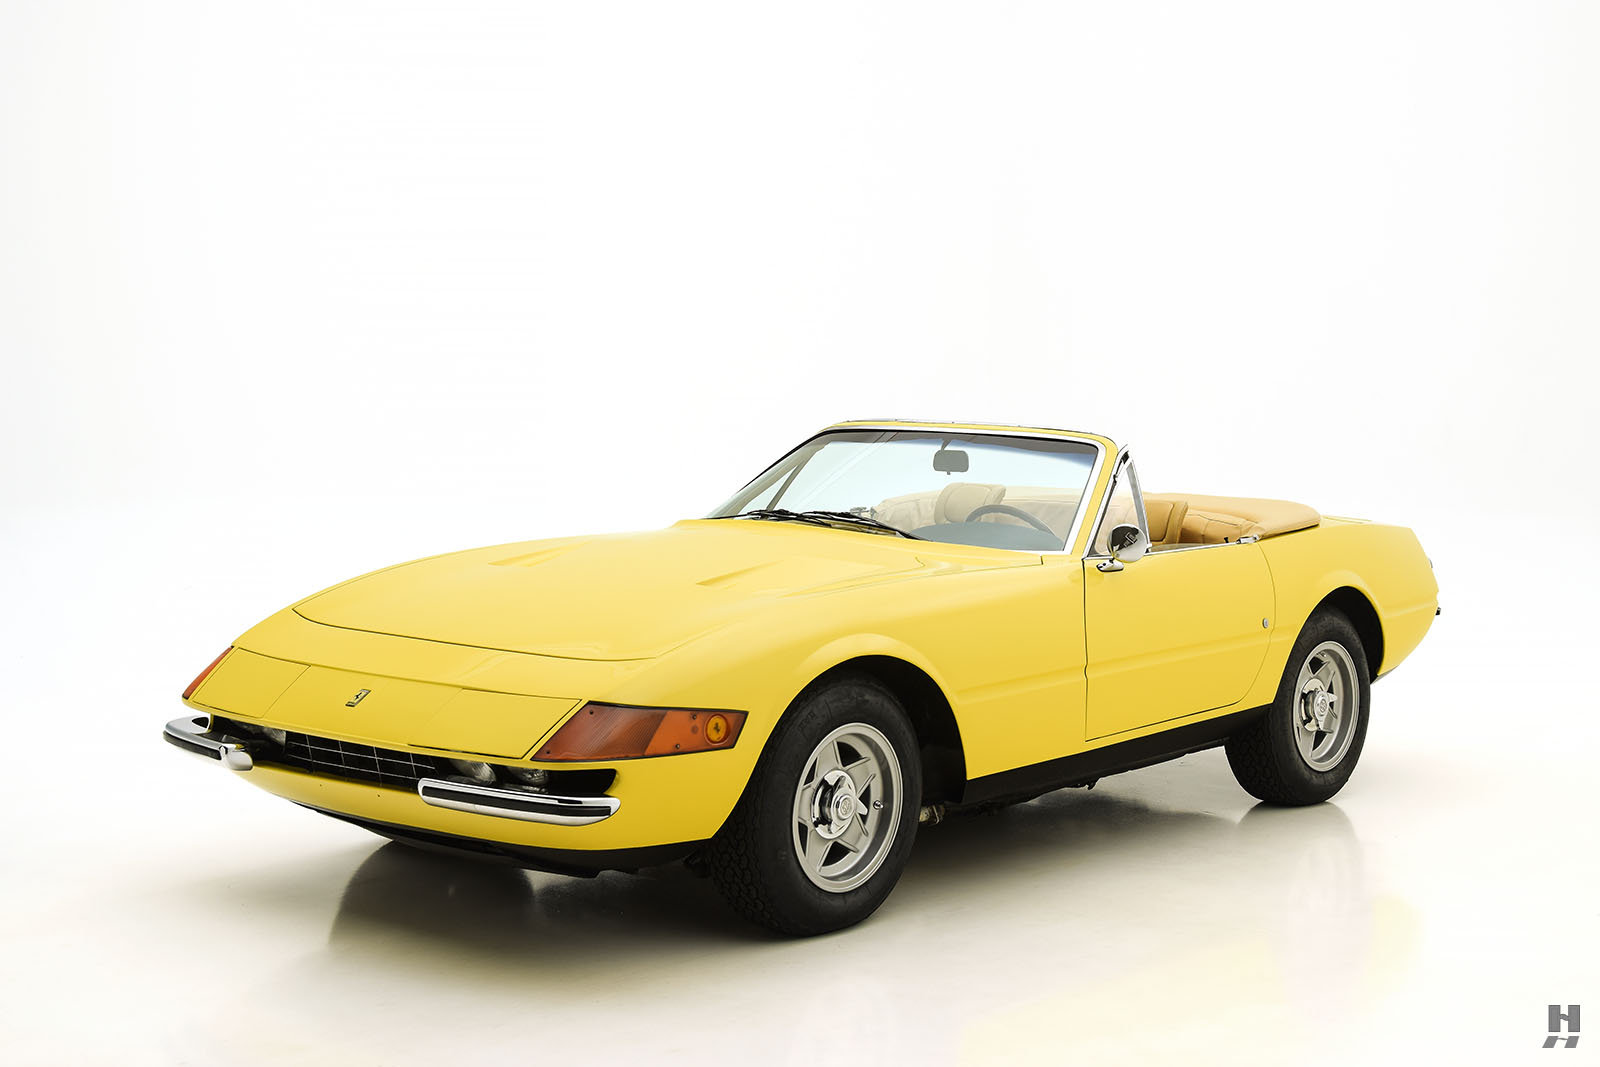 Ferrari 365 GTB/4 Daytona Spider-Conversion - 1971 For Sale (picture 1 of 6)